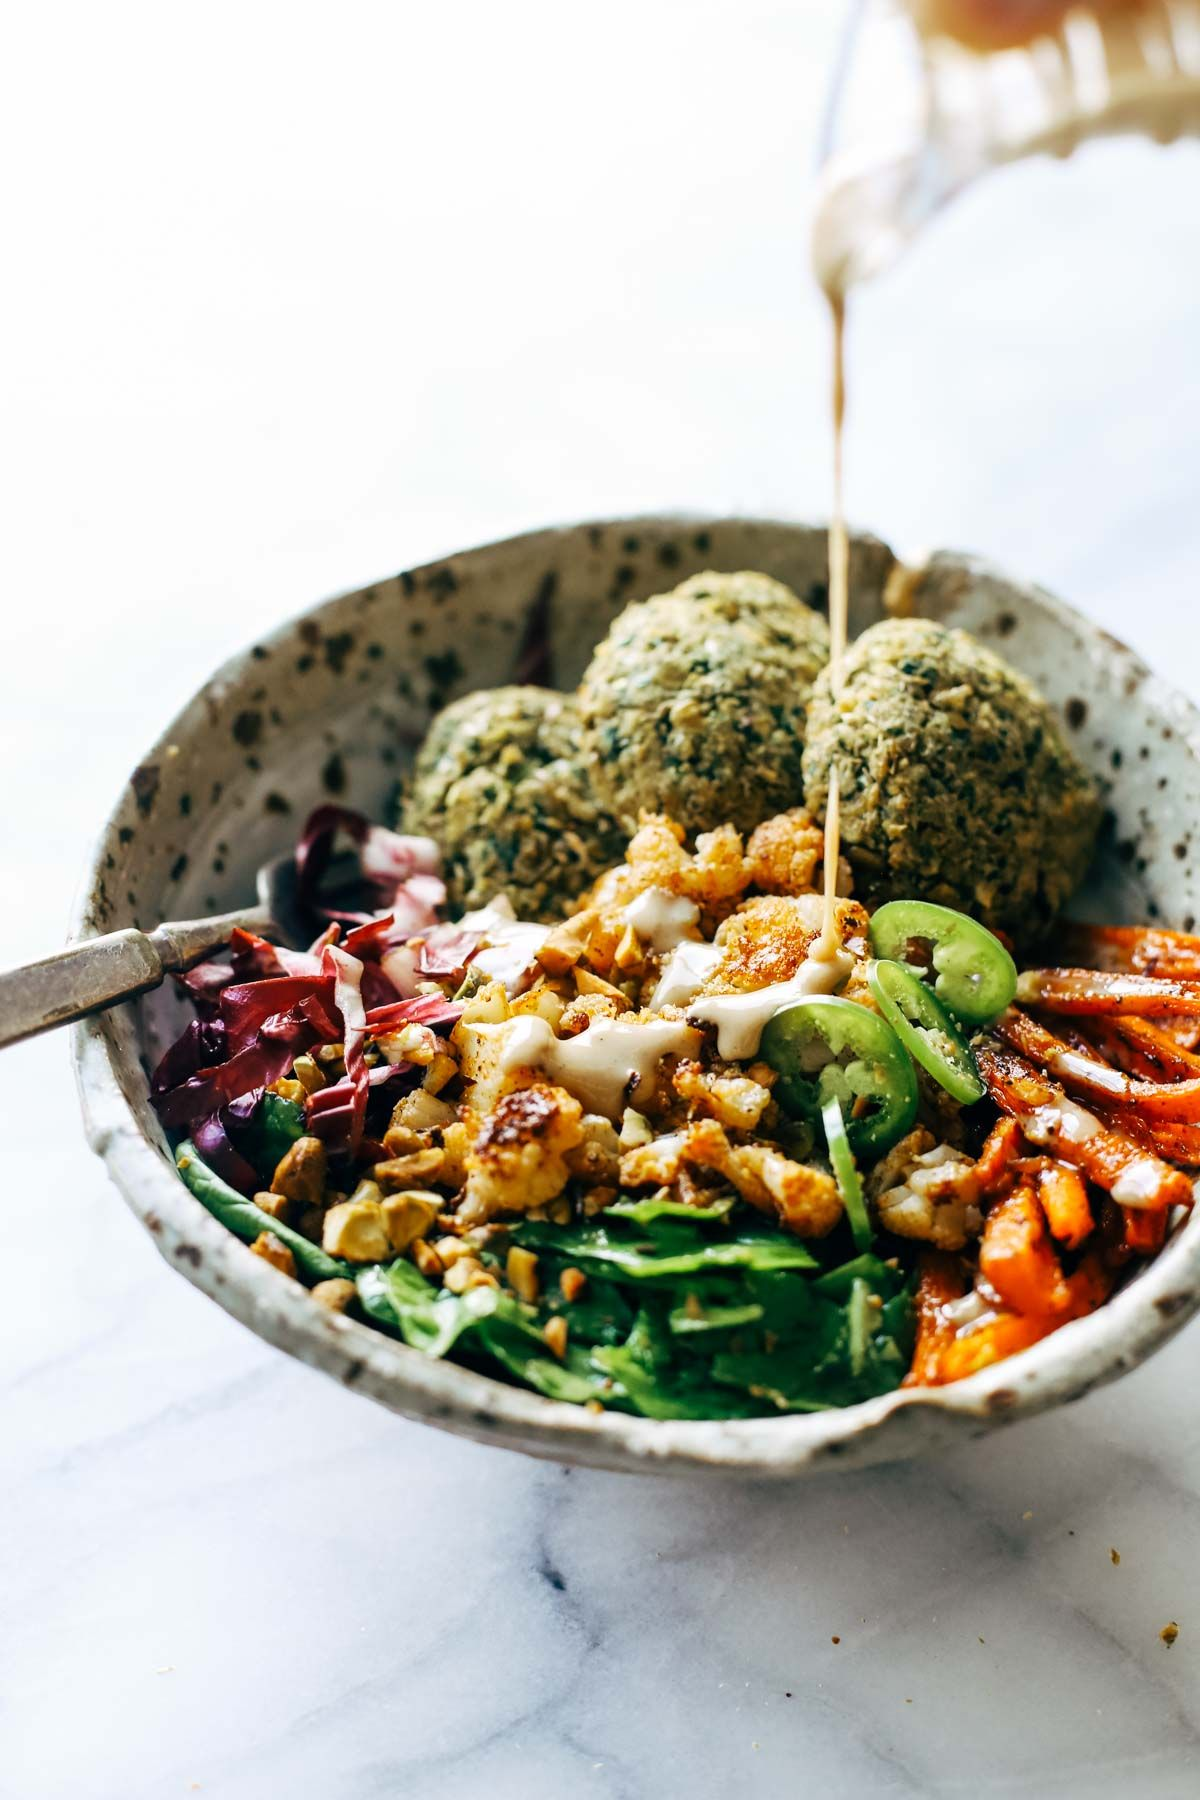 the ultimate winter bliss bowls  recipe  big bowl gluten free  - eat well and keep your glow all through winter easy homemade falafelroasted veggies baked falafeldinner bowlsdetox